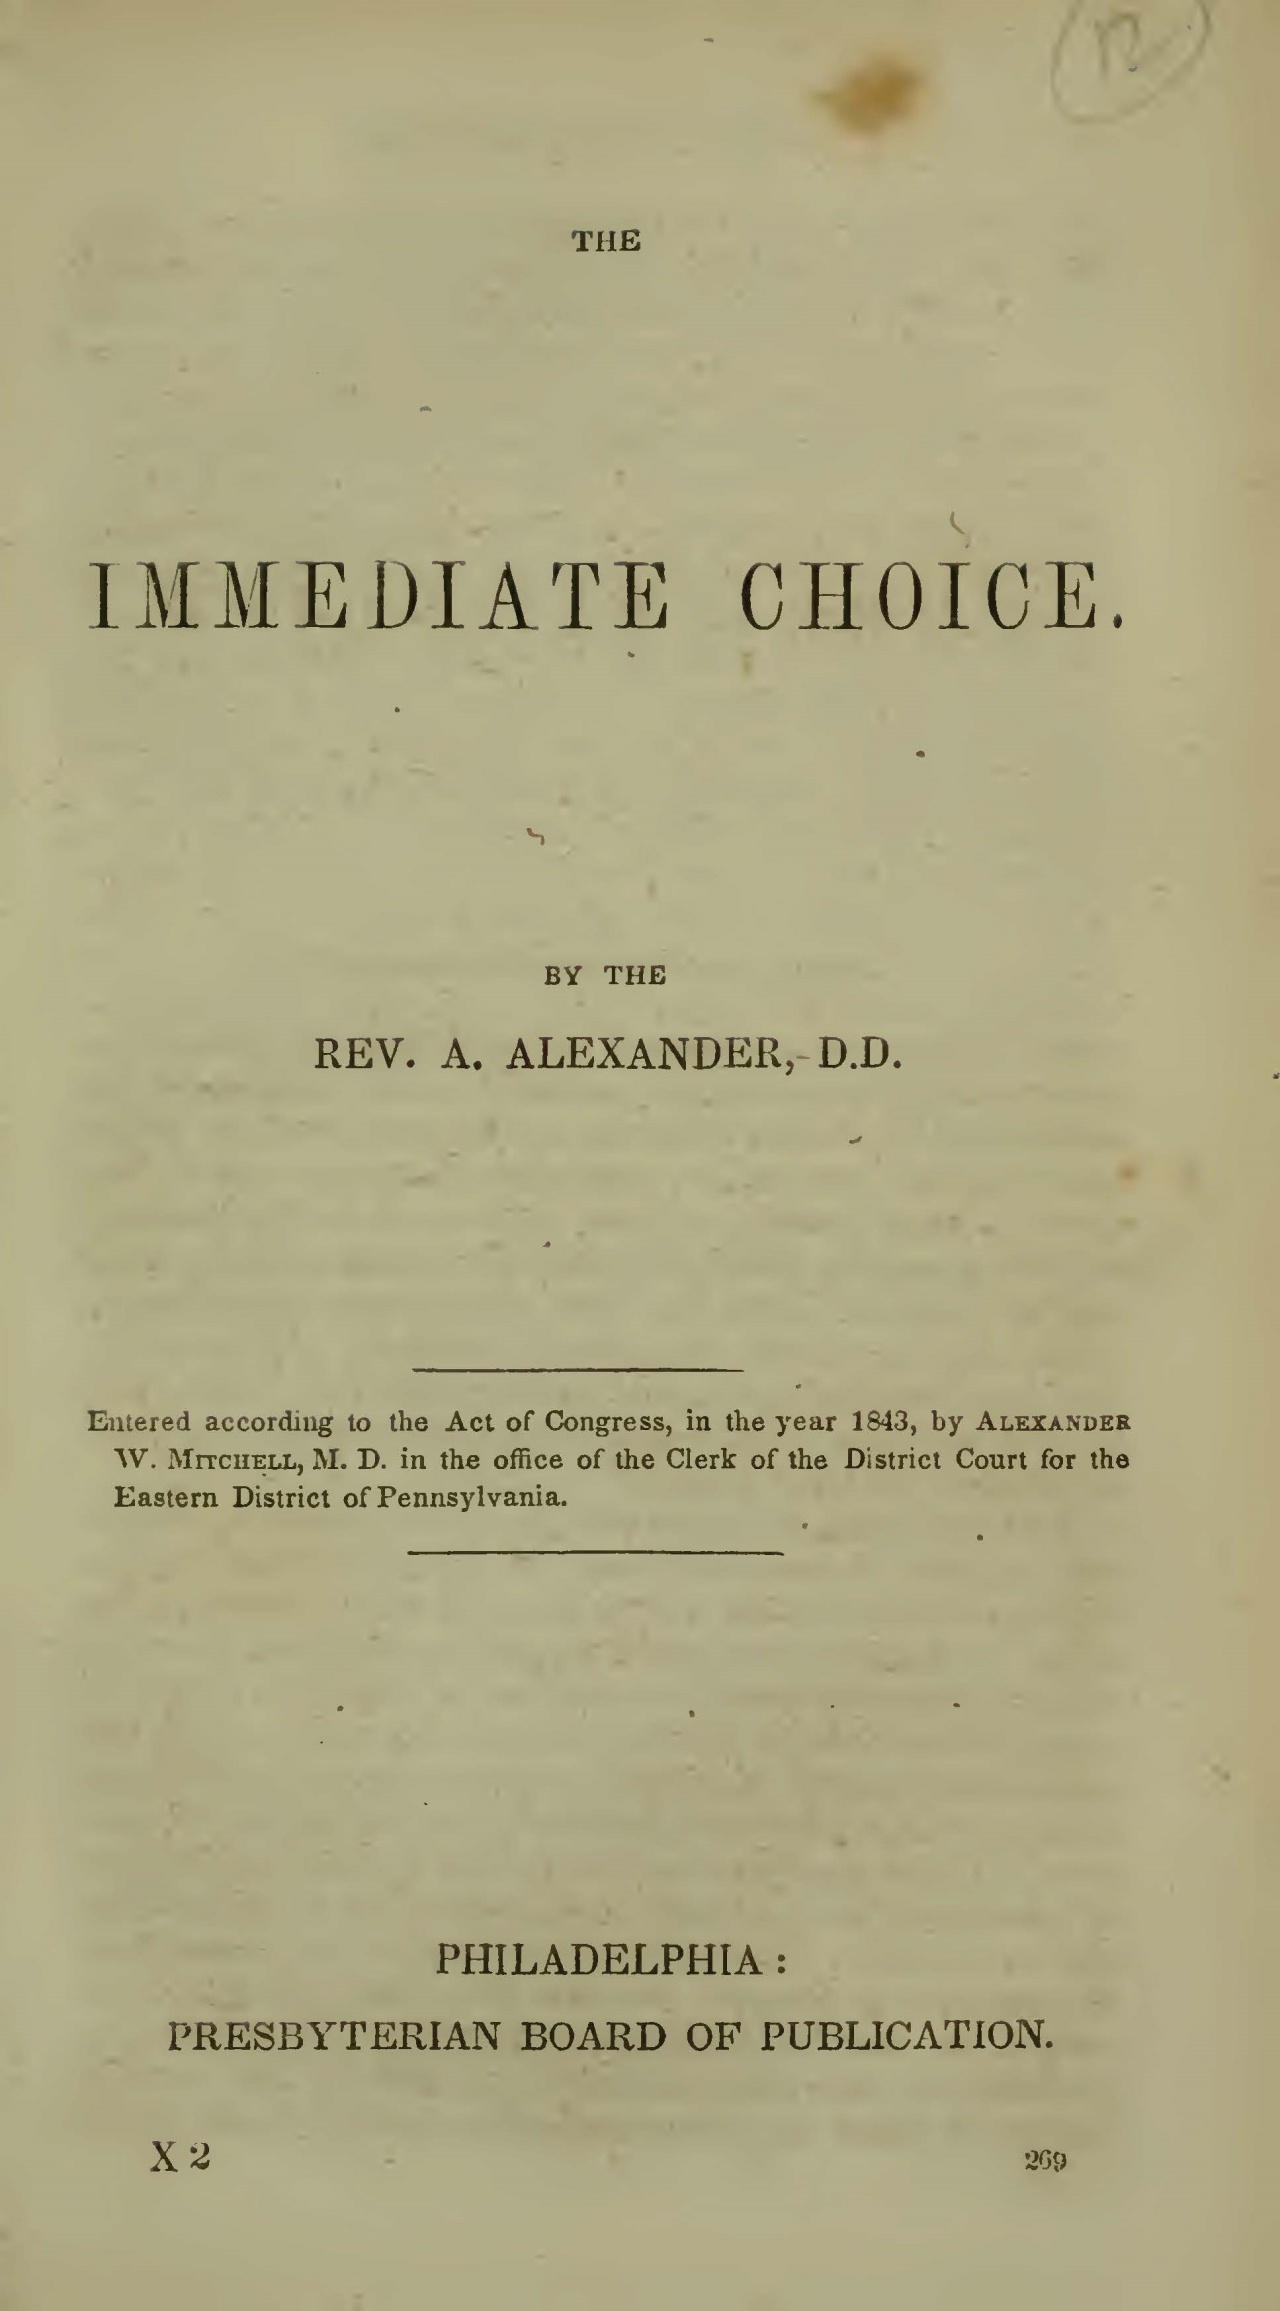 Alexander, Archibald, The Immediate Choice Title Page.jpg